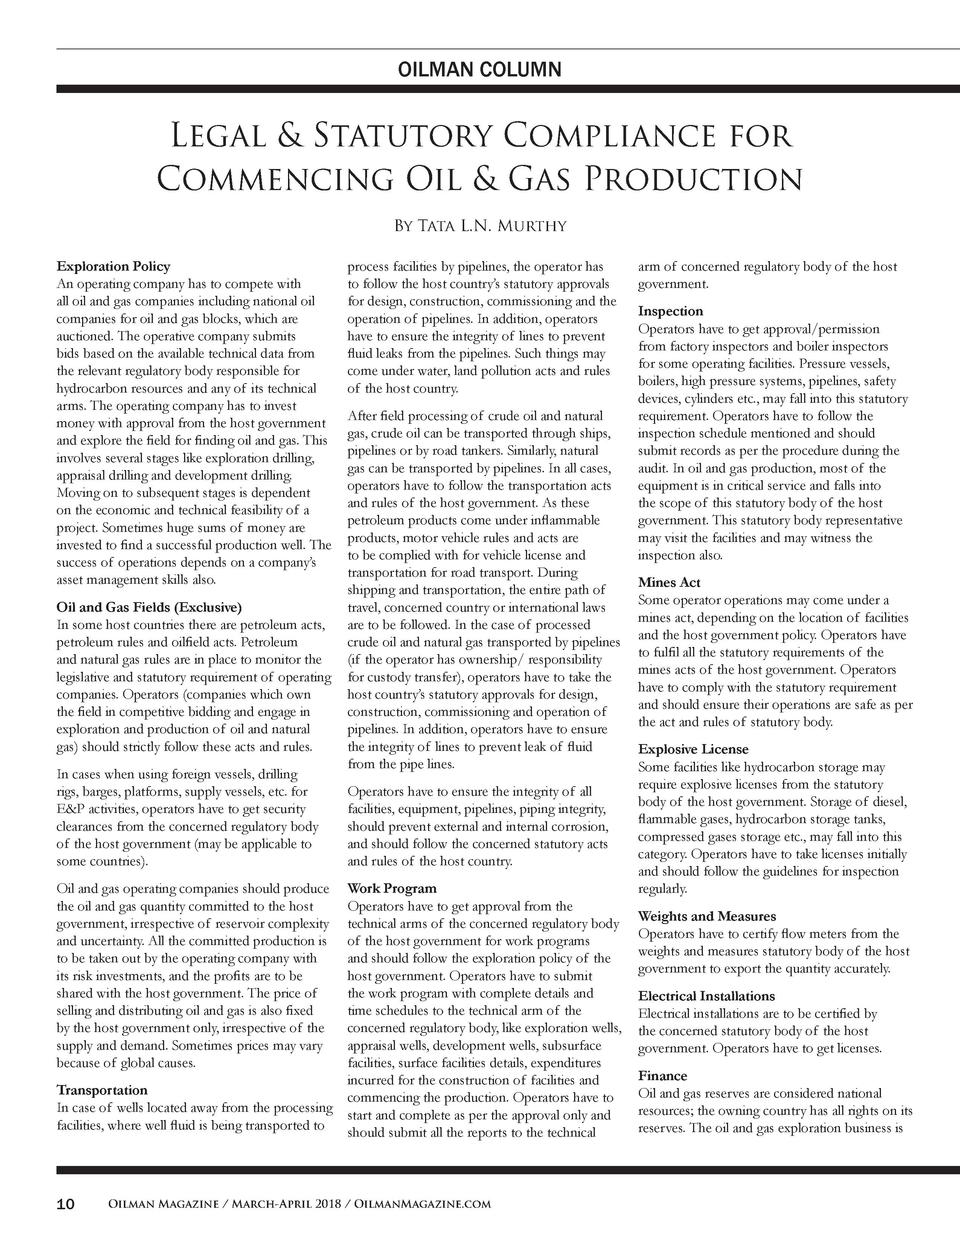 OILMAN COLUMN  Legal   Statutory Compliance for Commencing Oil   Gas Production By Tata L.N. Murthy Exploration Policy An ...